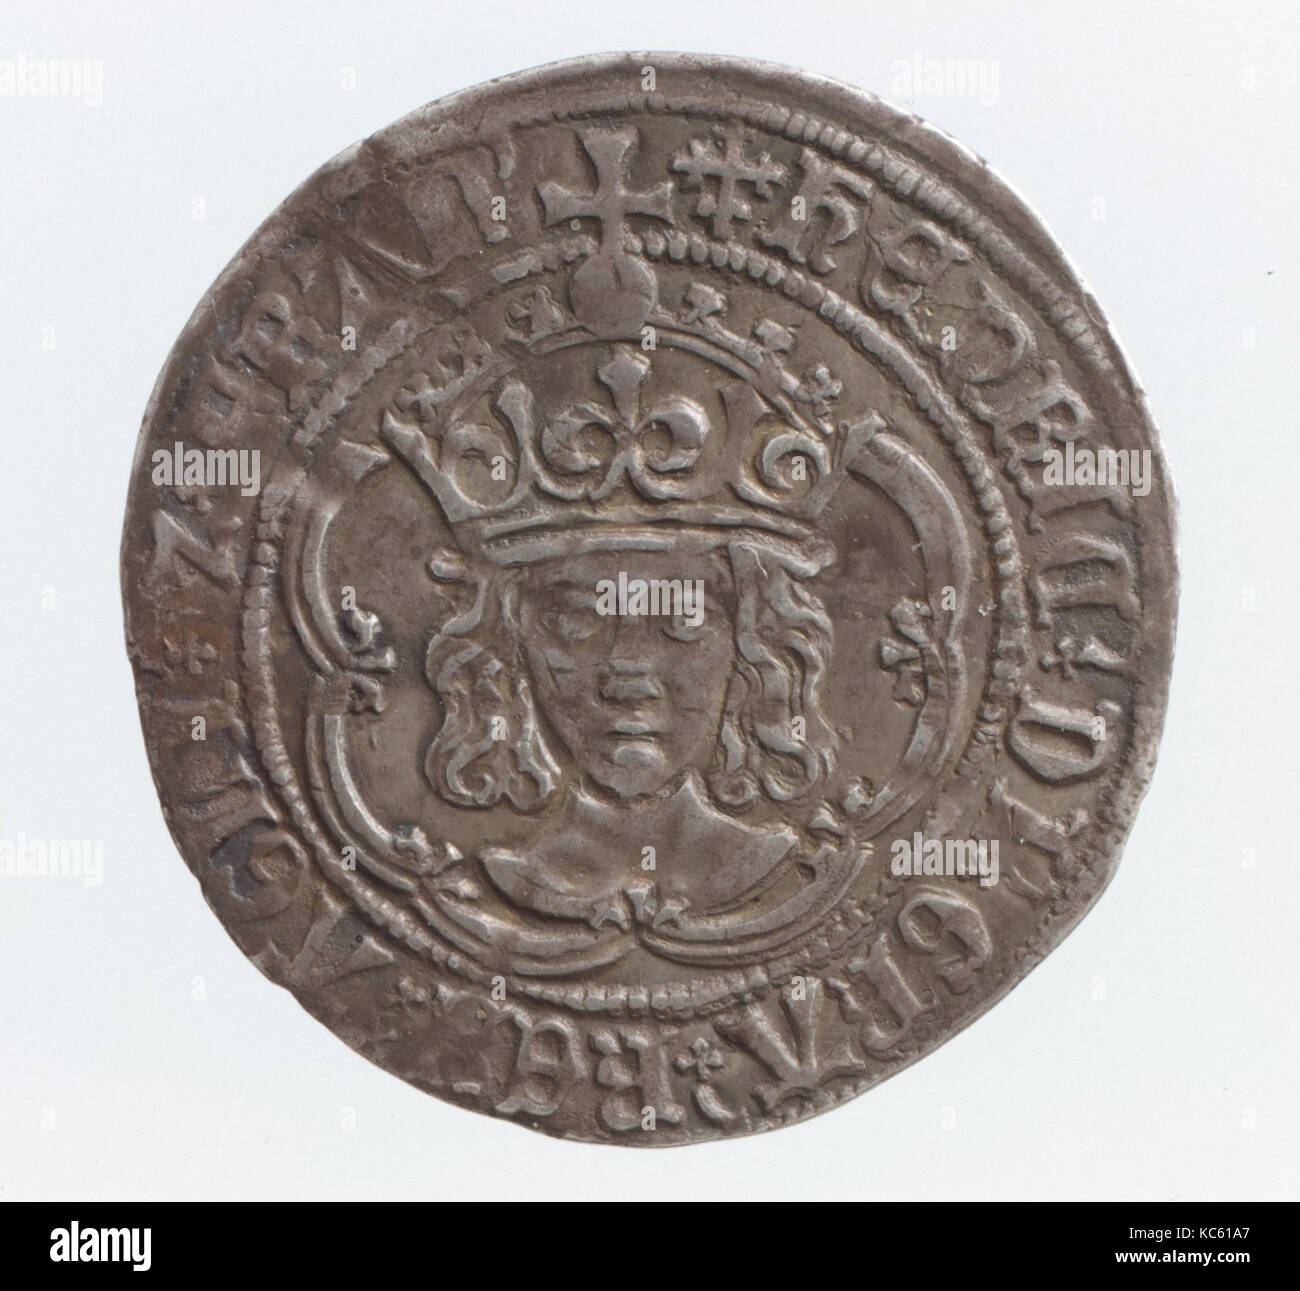 Groat of Henry VII (1485–1509), early 16th century, British, Silver, Diam. 25 mm., Coins - Stock Image